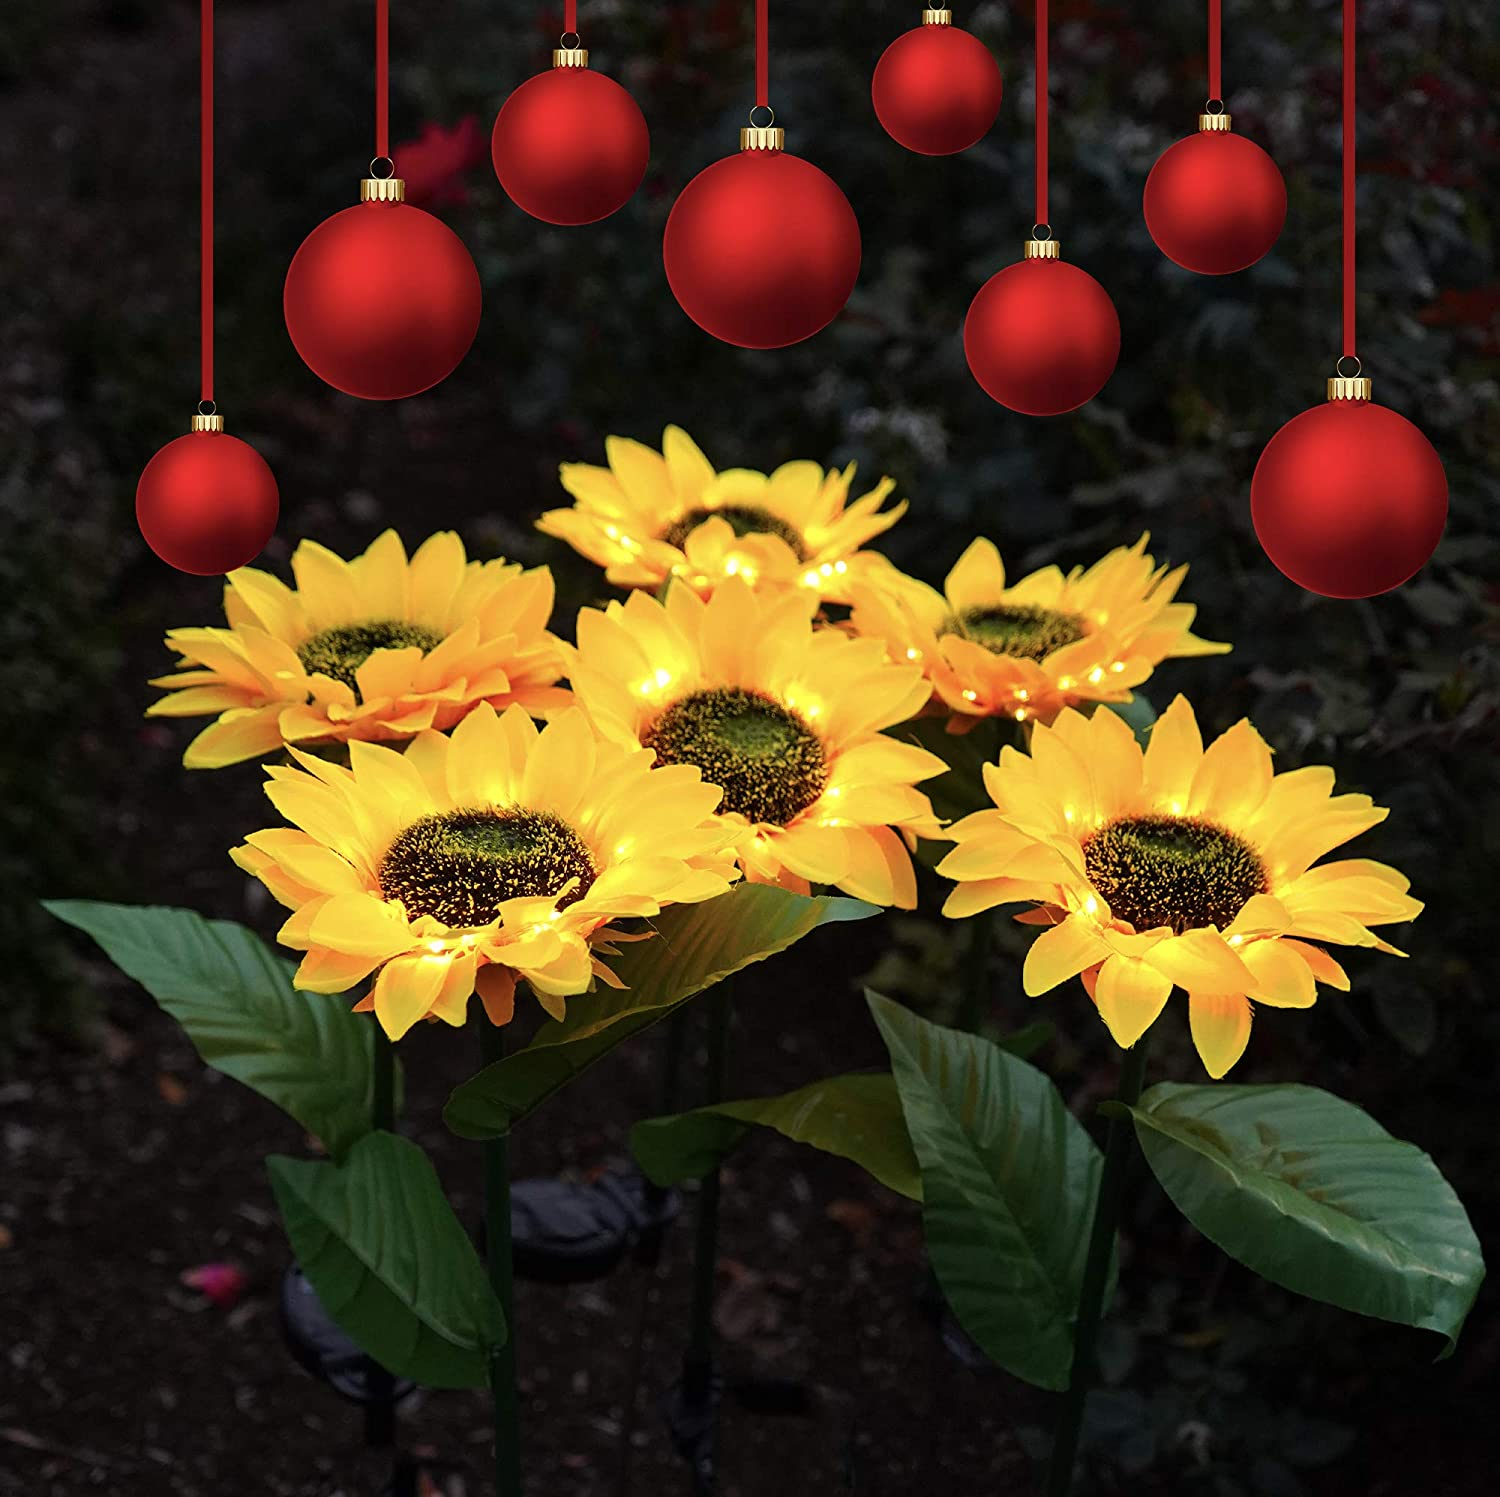 Solar LED Outdoor Lights | Sunflower Garden Lighting stay Lit 6-8 hrs, Easy to Install, Large Realistic & Natural Looking Flowers for Courtyard, Front yard, Patio, Balcony, Entryway- 2Pc by 2BFFS.com